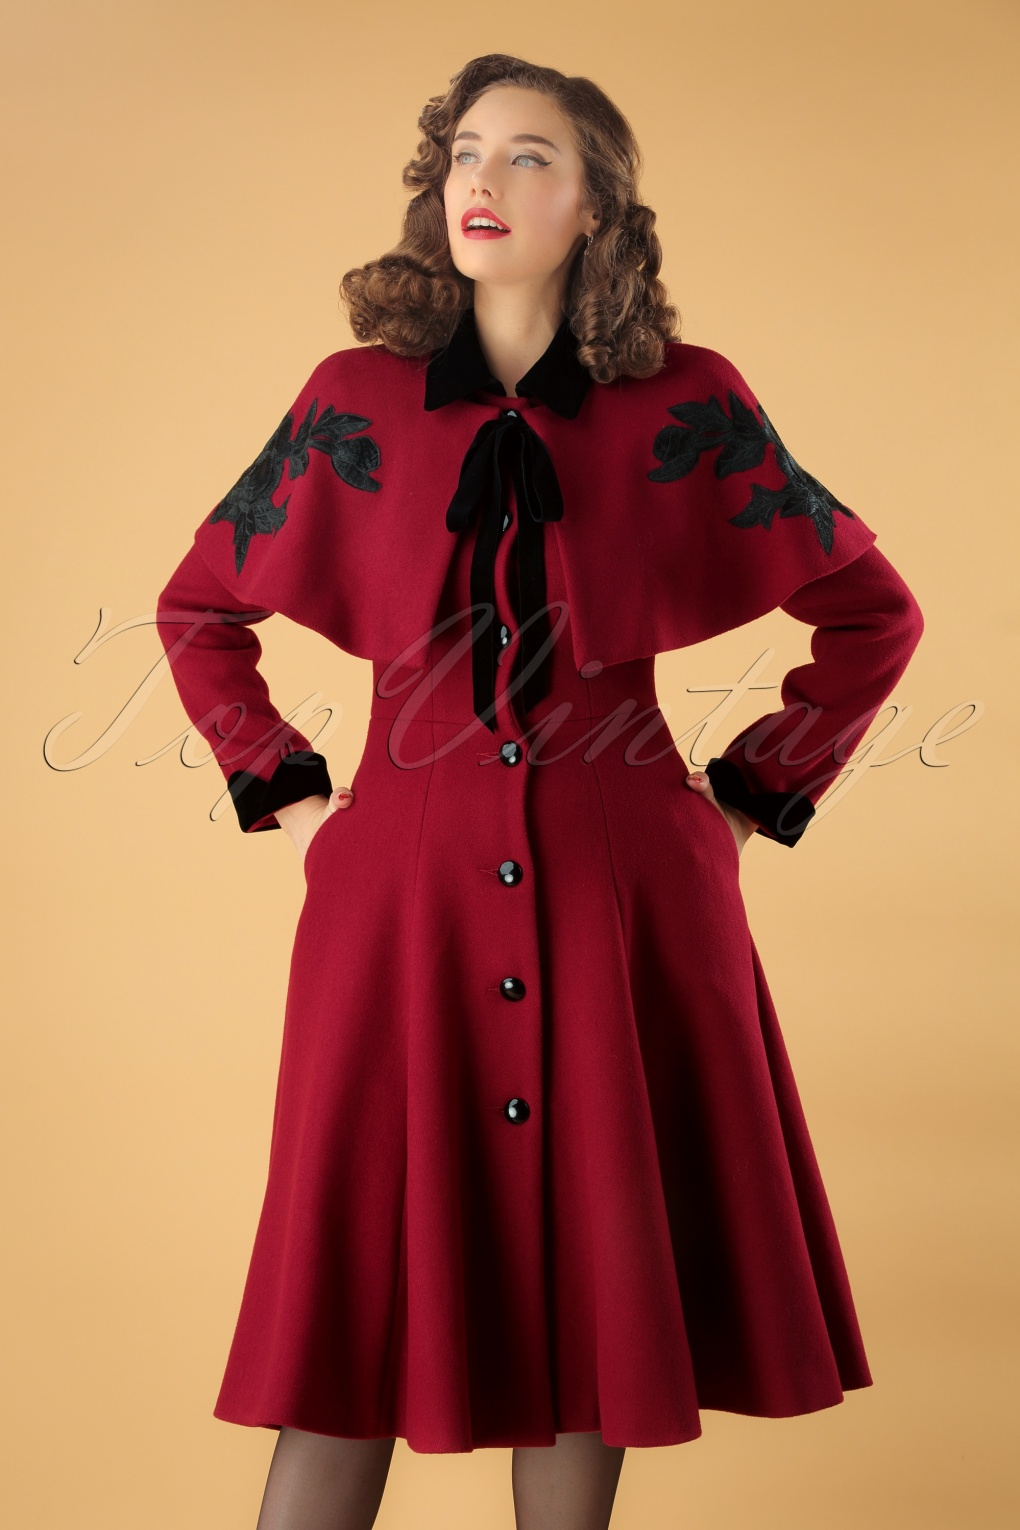 Vintage Coats & Jackets | Retro Coats and Jackets 40s Claudia Coat And Roses Cape in Burgundy Wool £197.15 AT vintagedancer.com